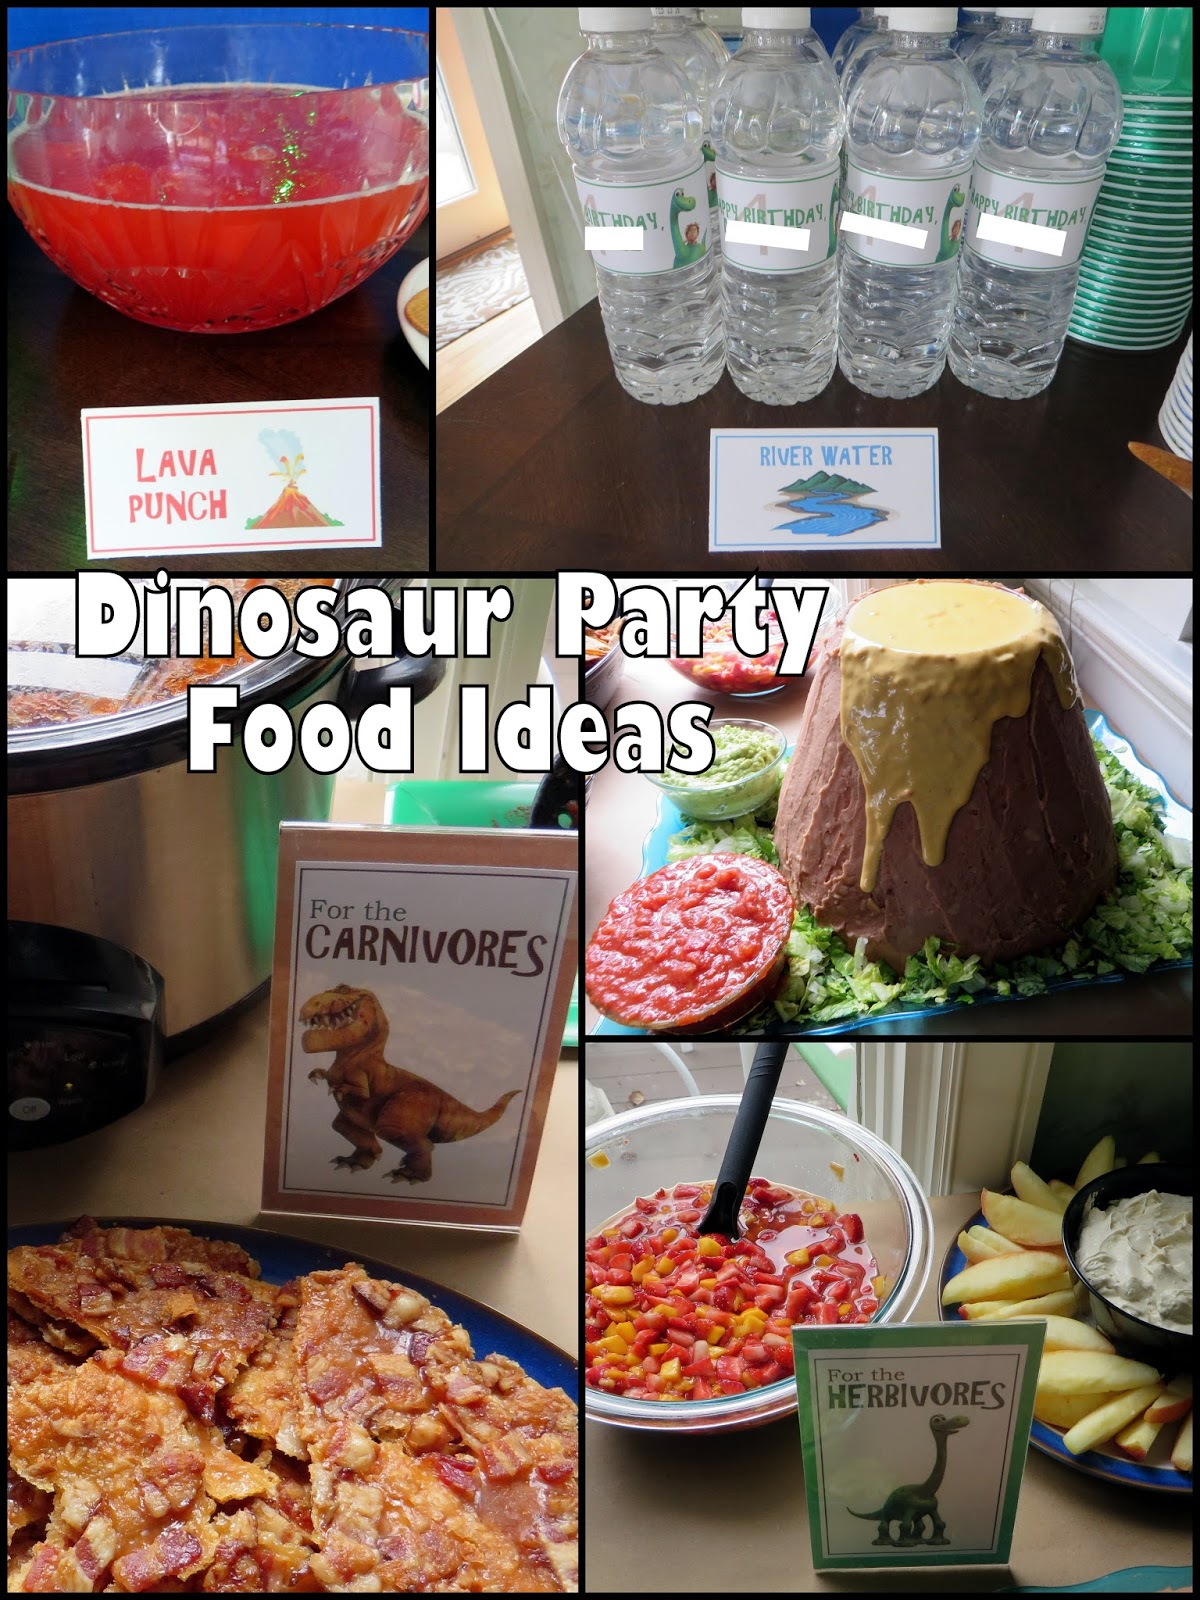 Moms Tot School: The Good Dinosaur Birthday Party!